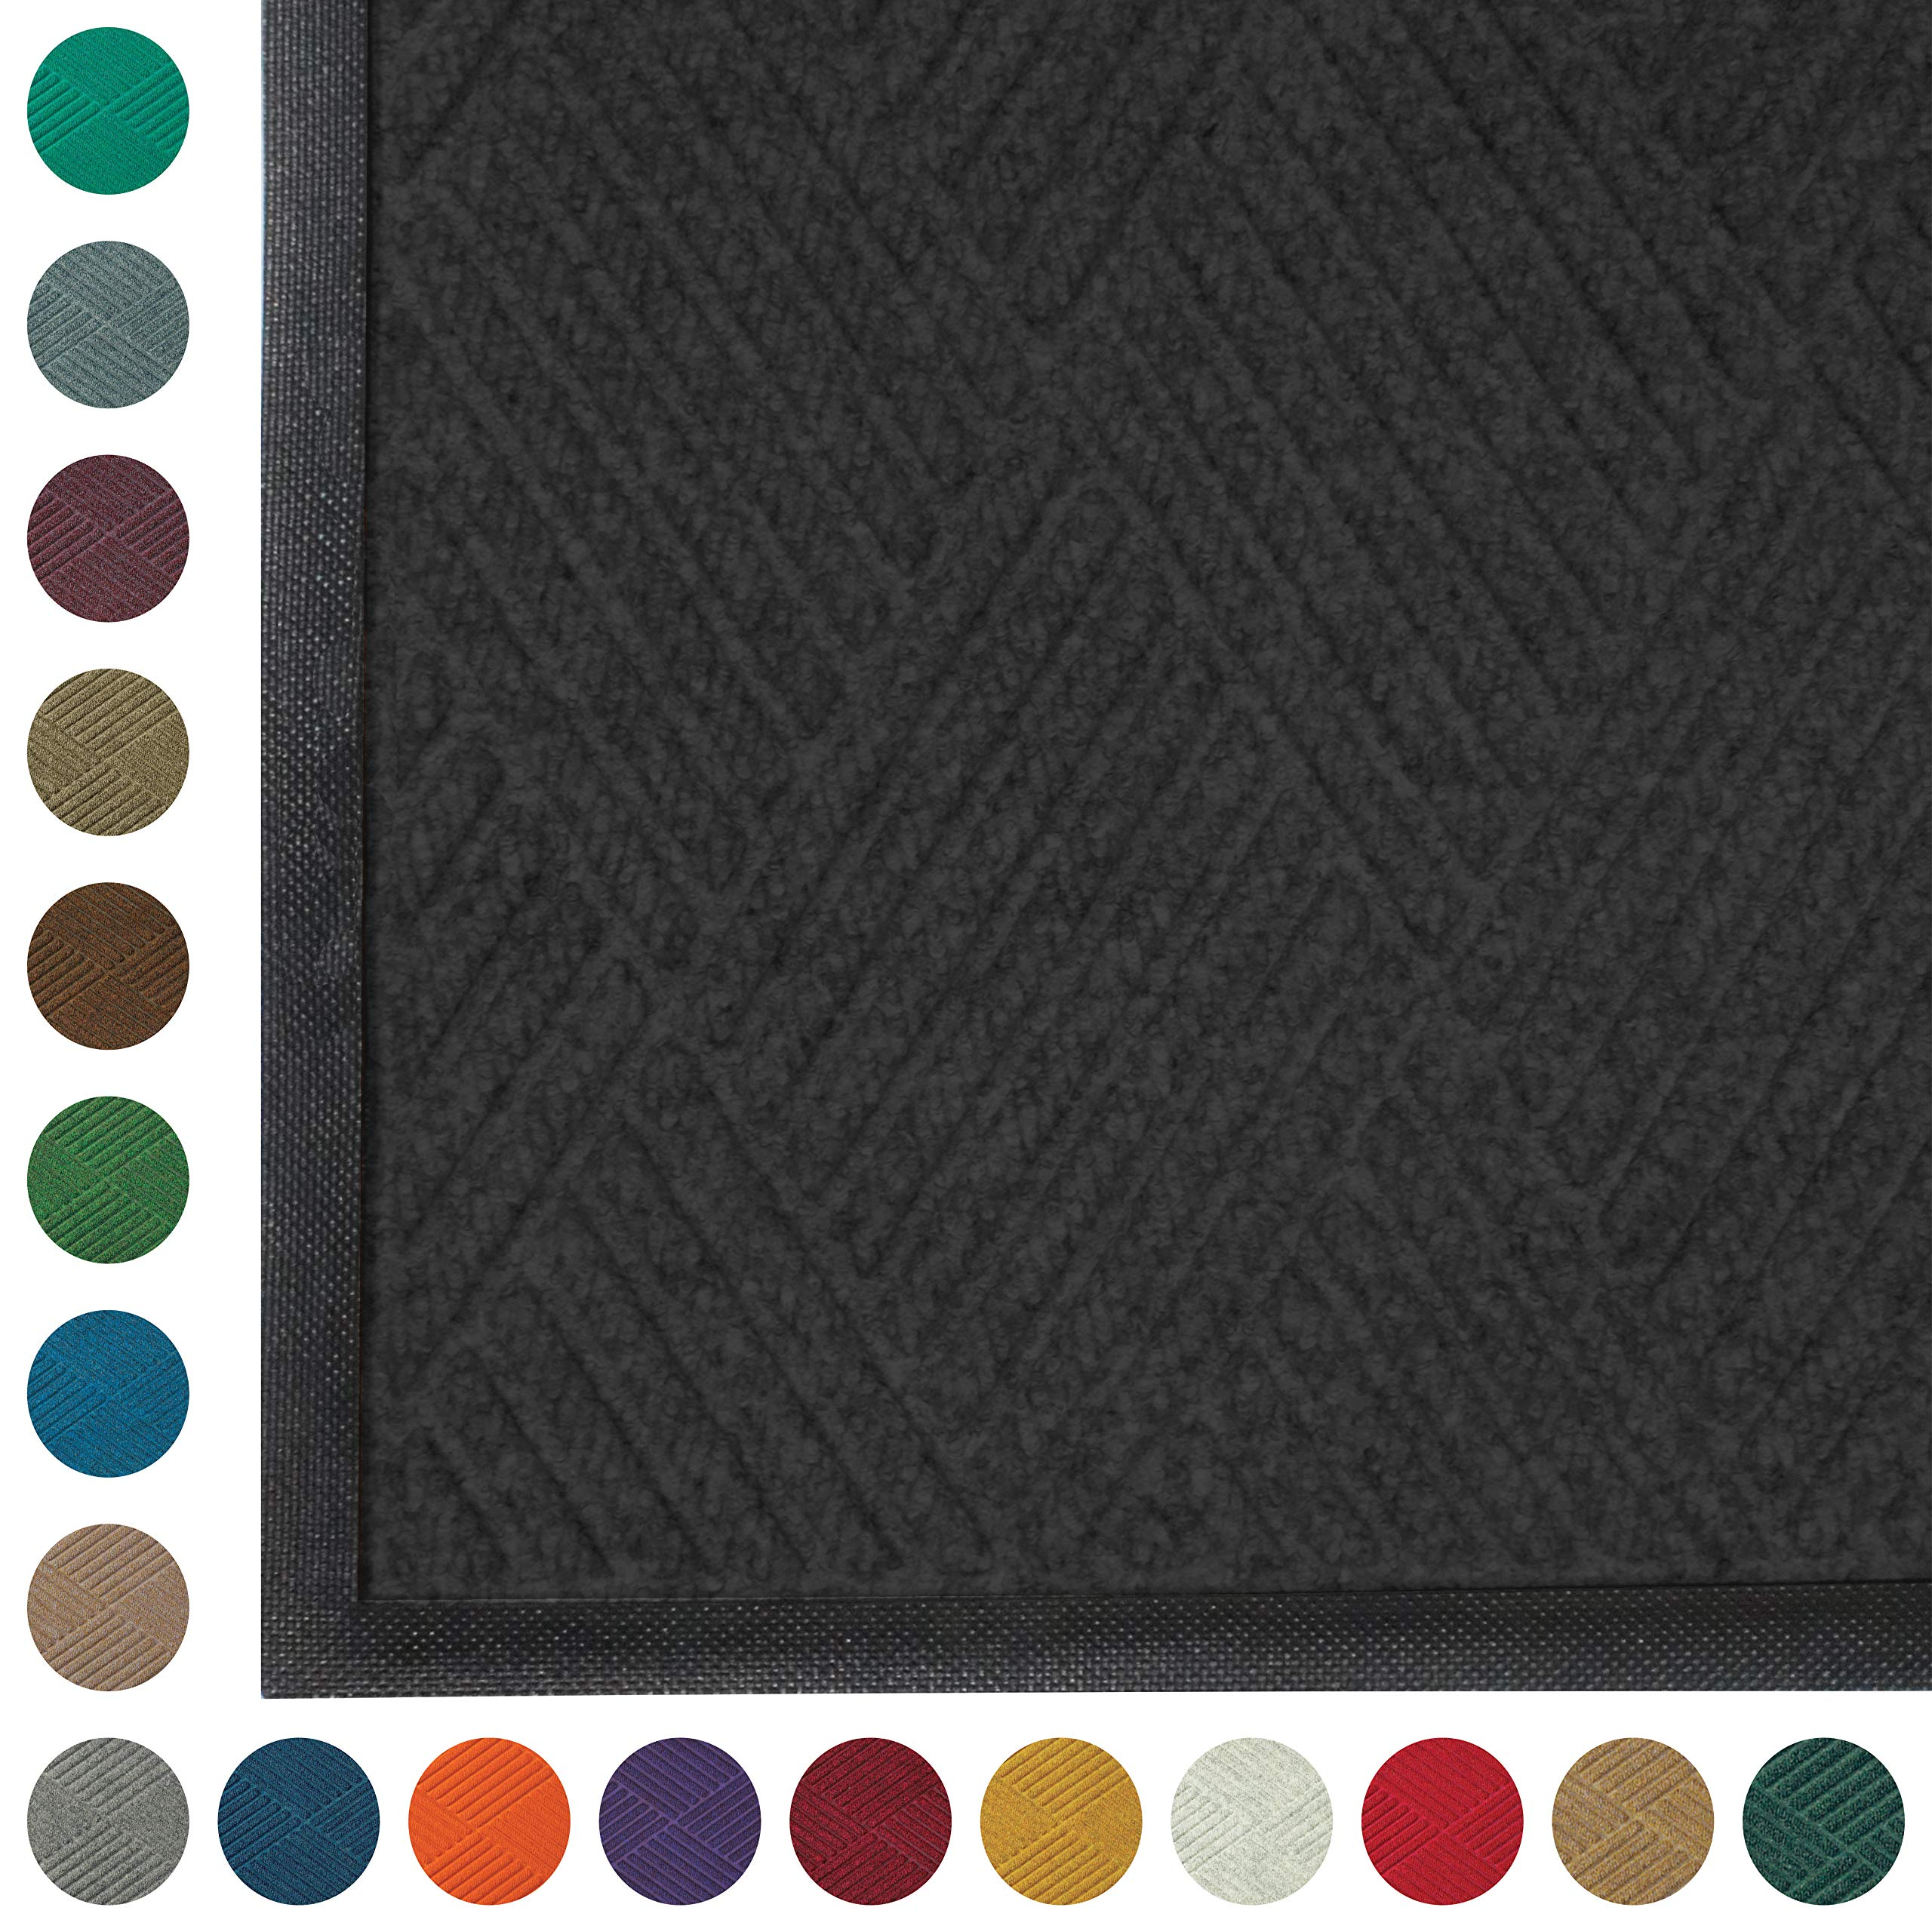 WaterHog Diamond | Commercial-Grade Entrance Mat with Rubber Border - Indoor/Outdoor, Quick Drying, Stain Resistant Door Mat (Charcoal, 3' x 5') by M+A Matting